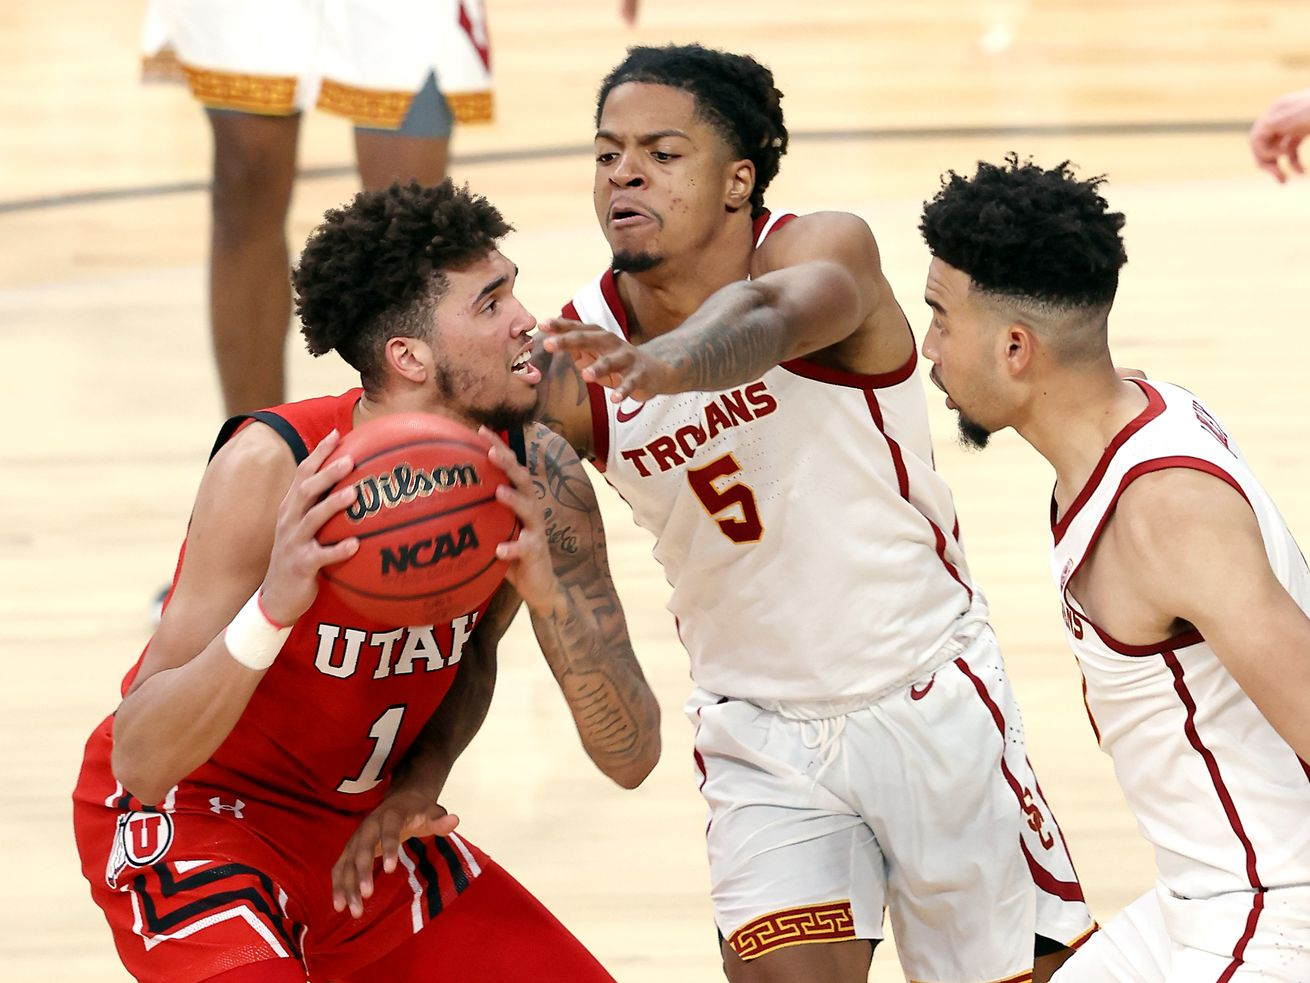 Utah Utes forward Timmy Allen (1) works to get off a shot with USC Trojans guard Isaiah White (5) defending him as Utah and USC play in the Pac-12 Tournament at T-Mobile Arena in Las Vegas on Thursday, March 11, 2021. USC won 91-85 in double overtime.